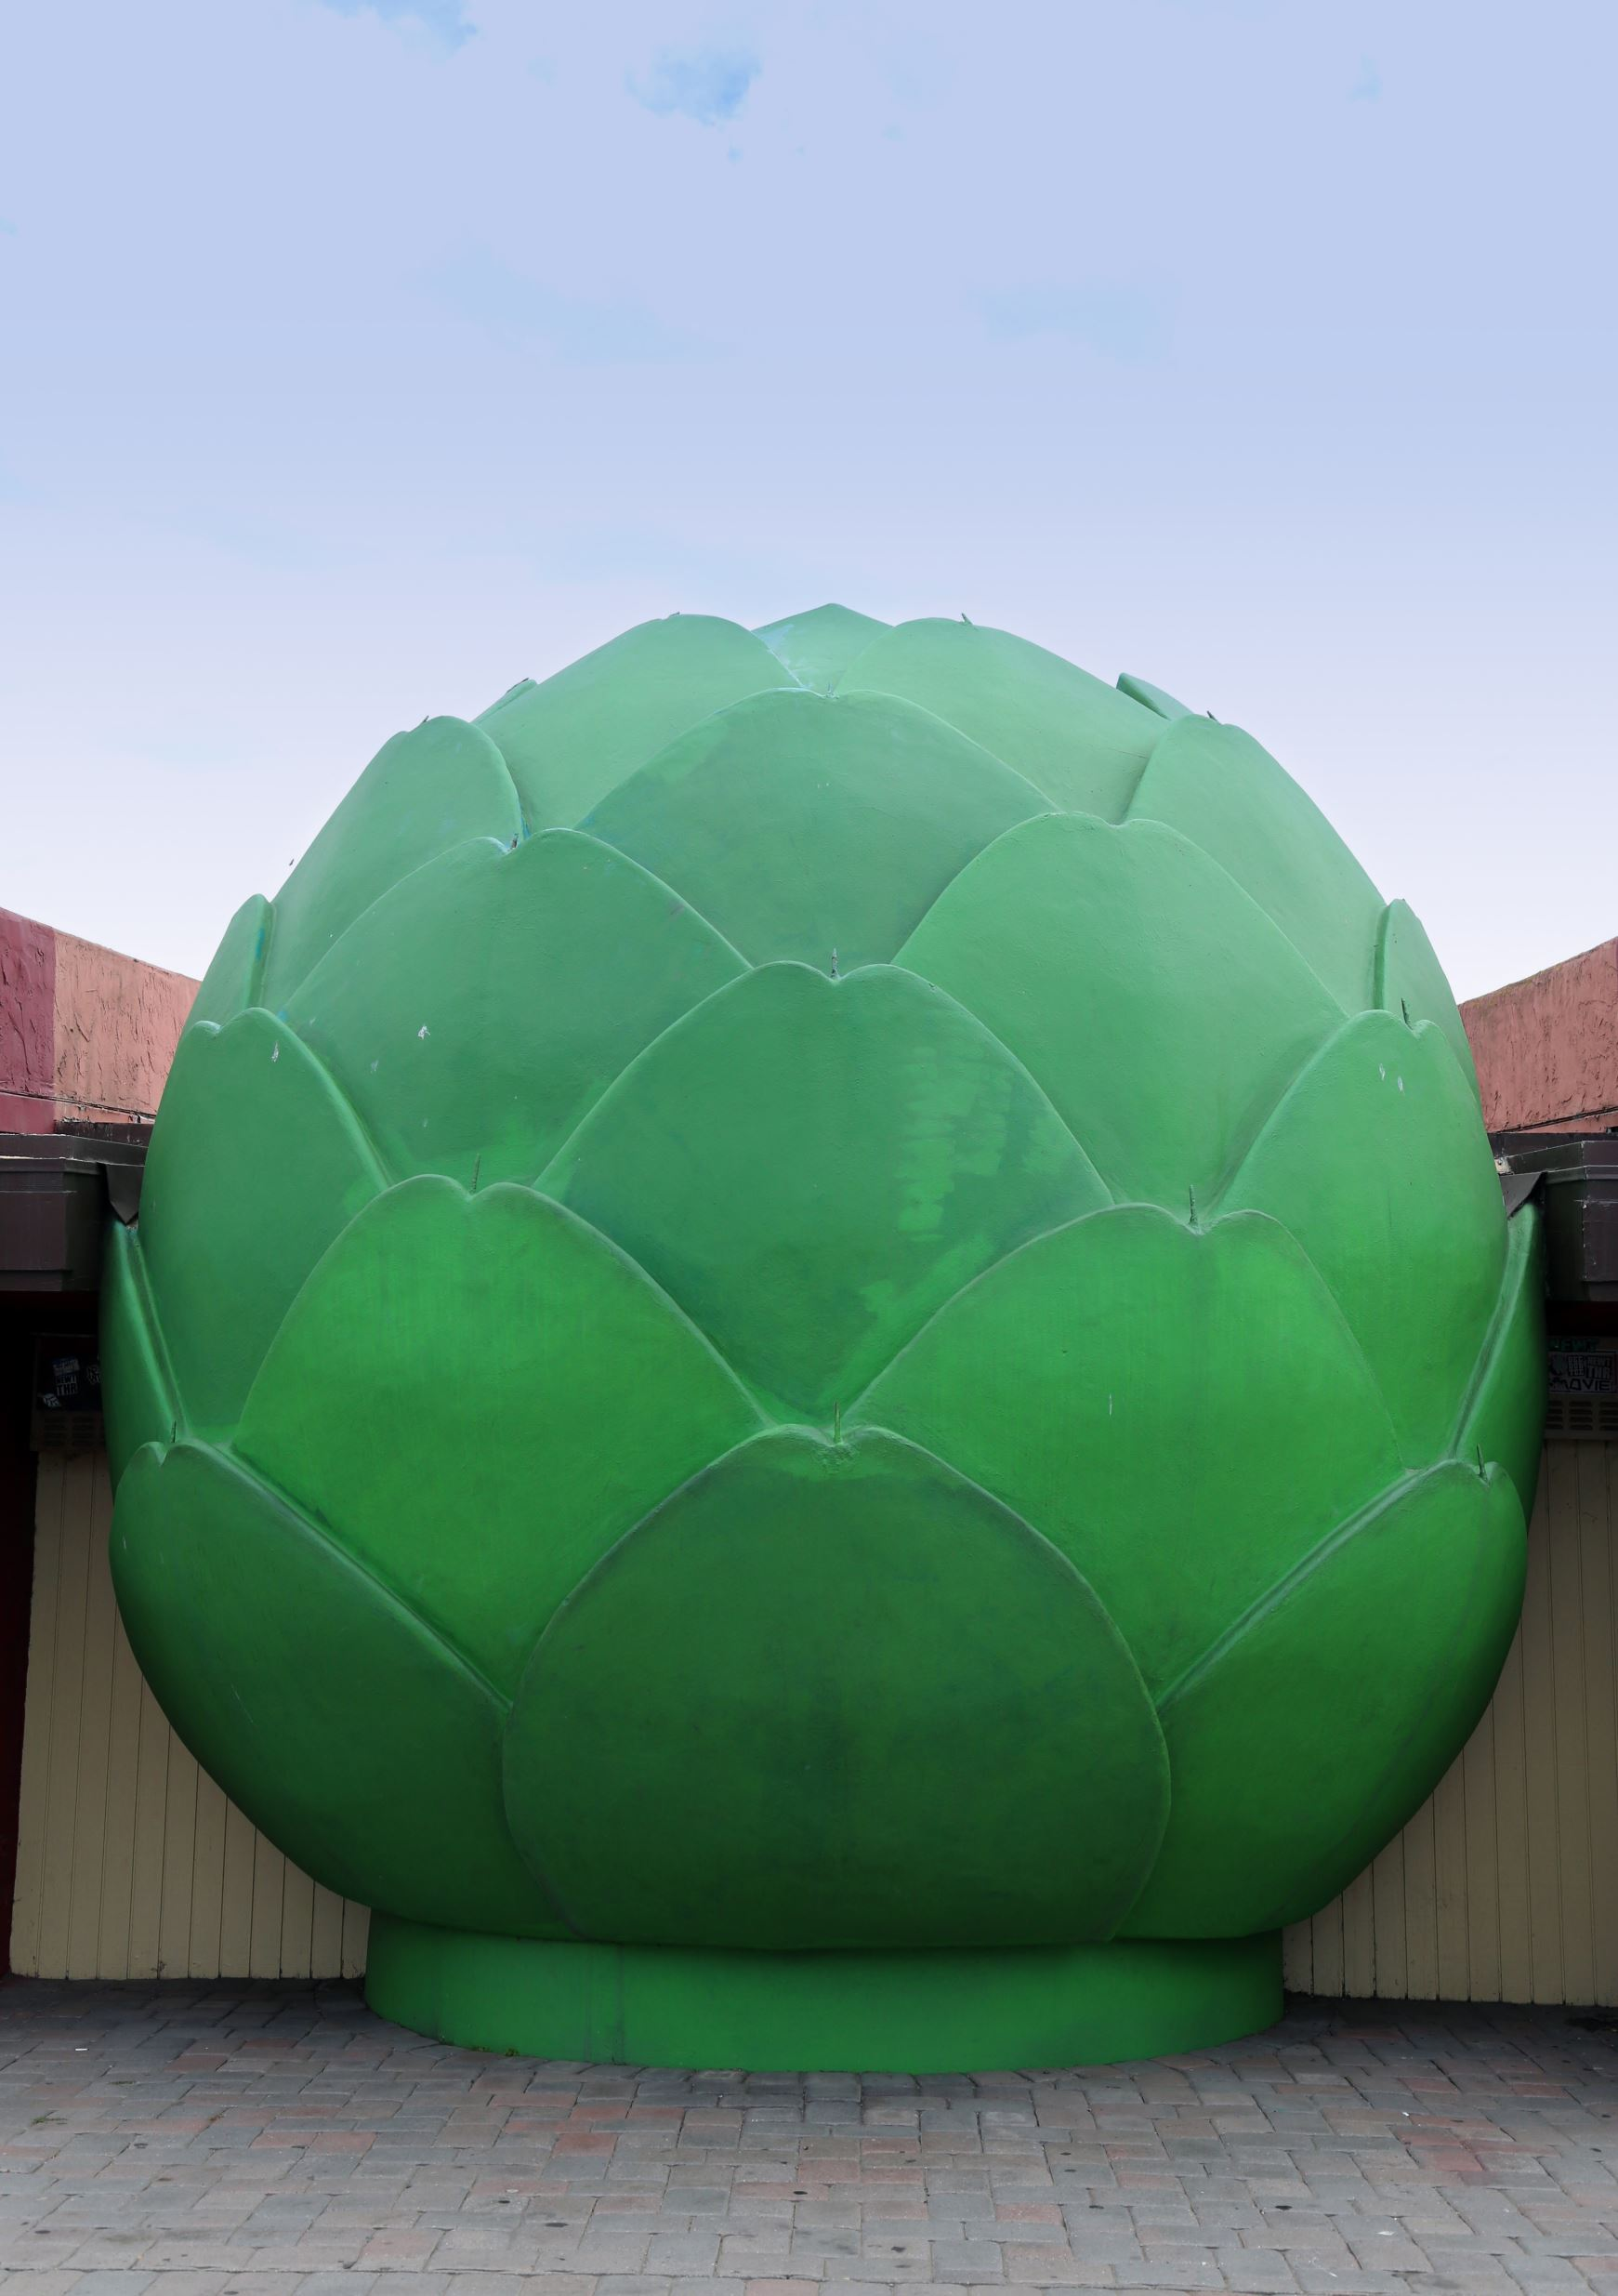 Slide 4 of 19: The world's largest artichoke In the town of Castroville, California. Artichoke capital of the world.